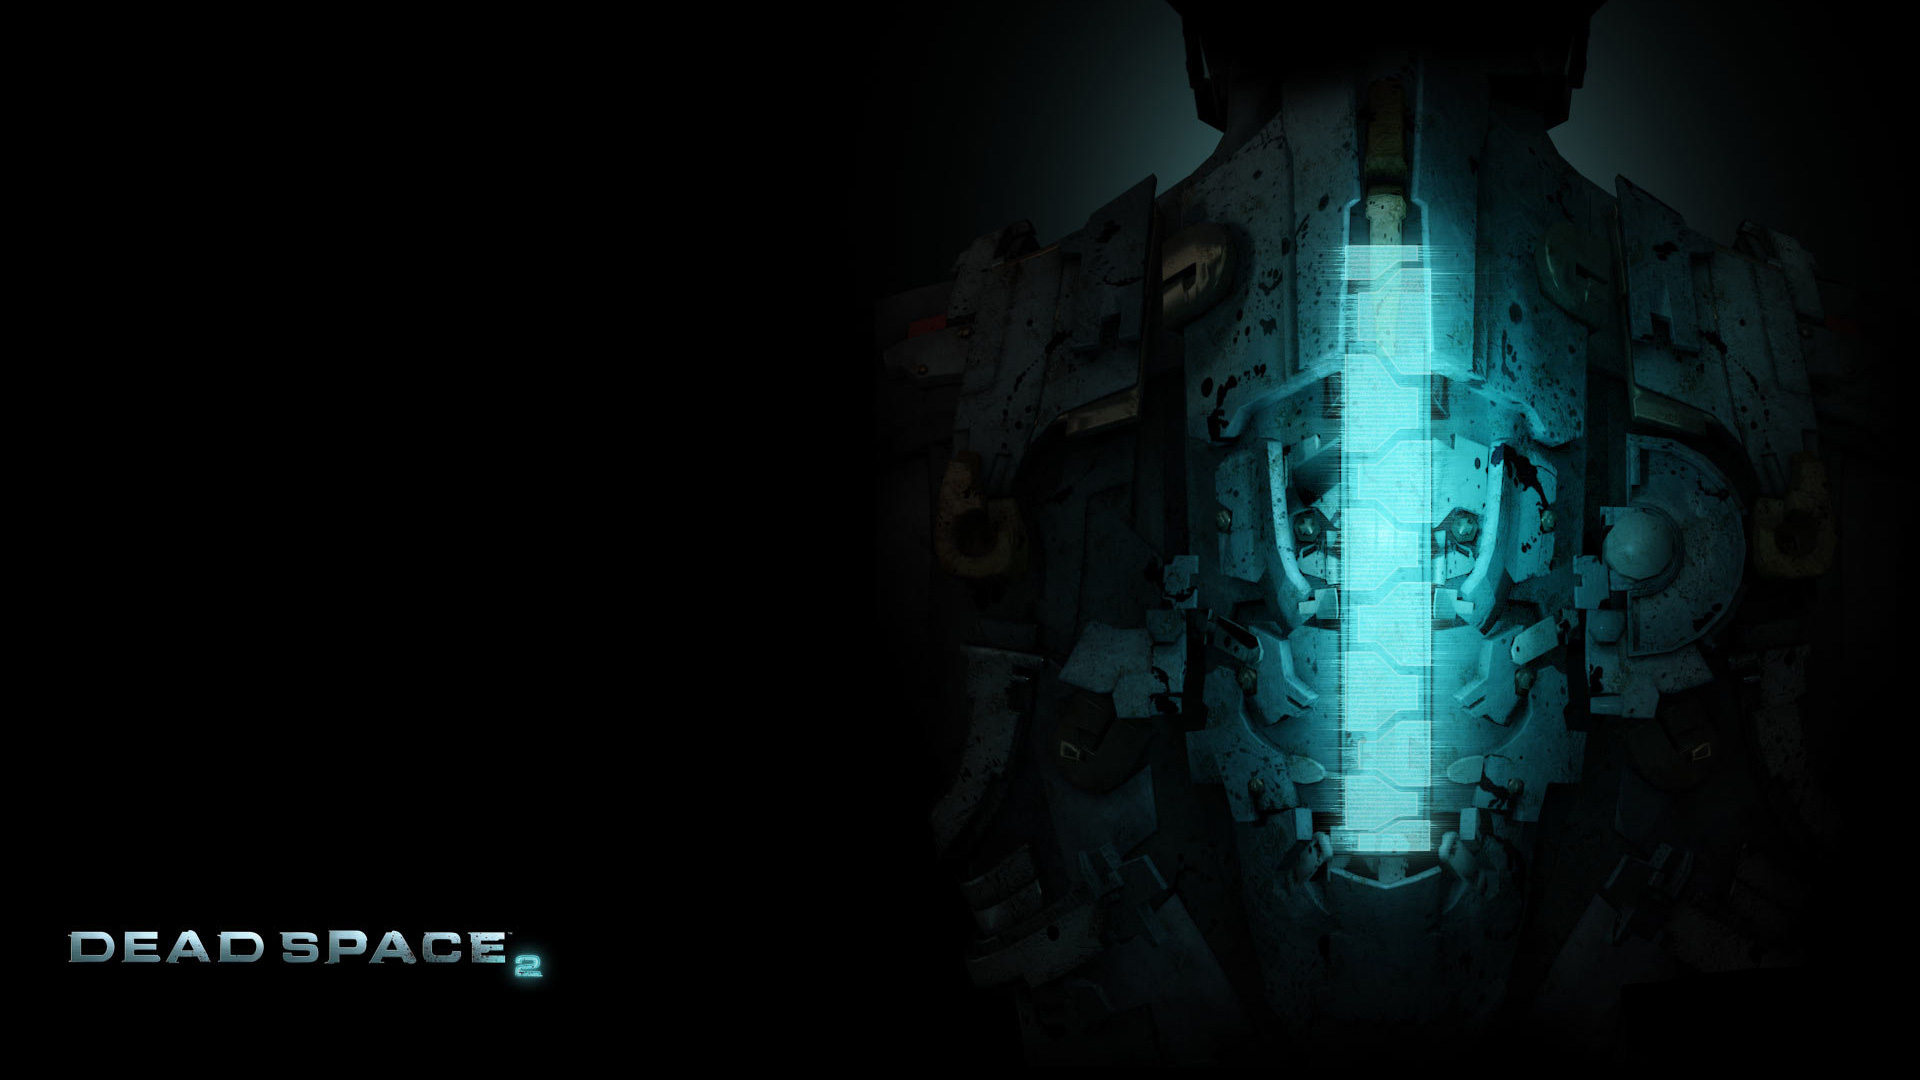 Free Download Dead Space 2 Wallpaper In 1920x1080 1920x1080 For